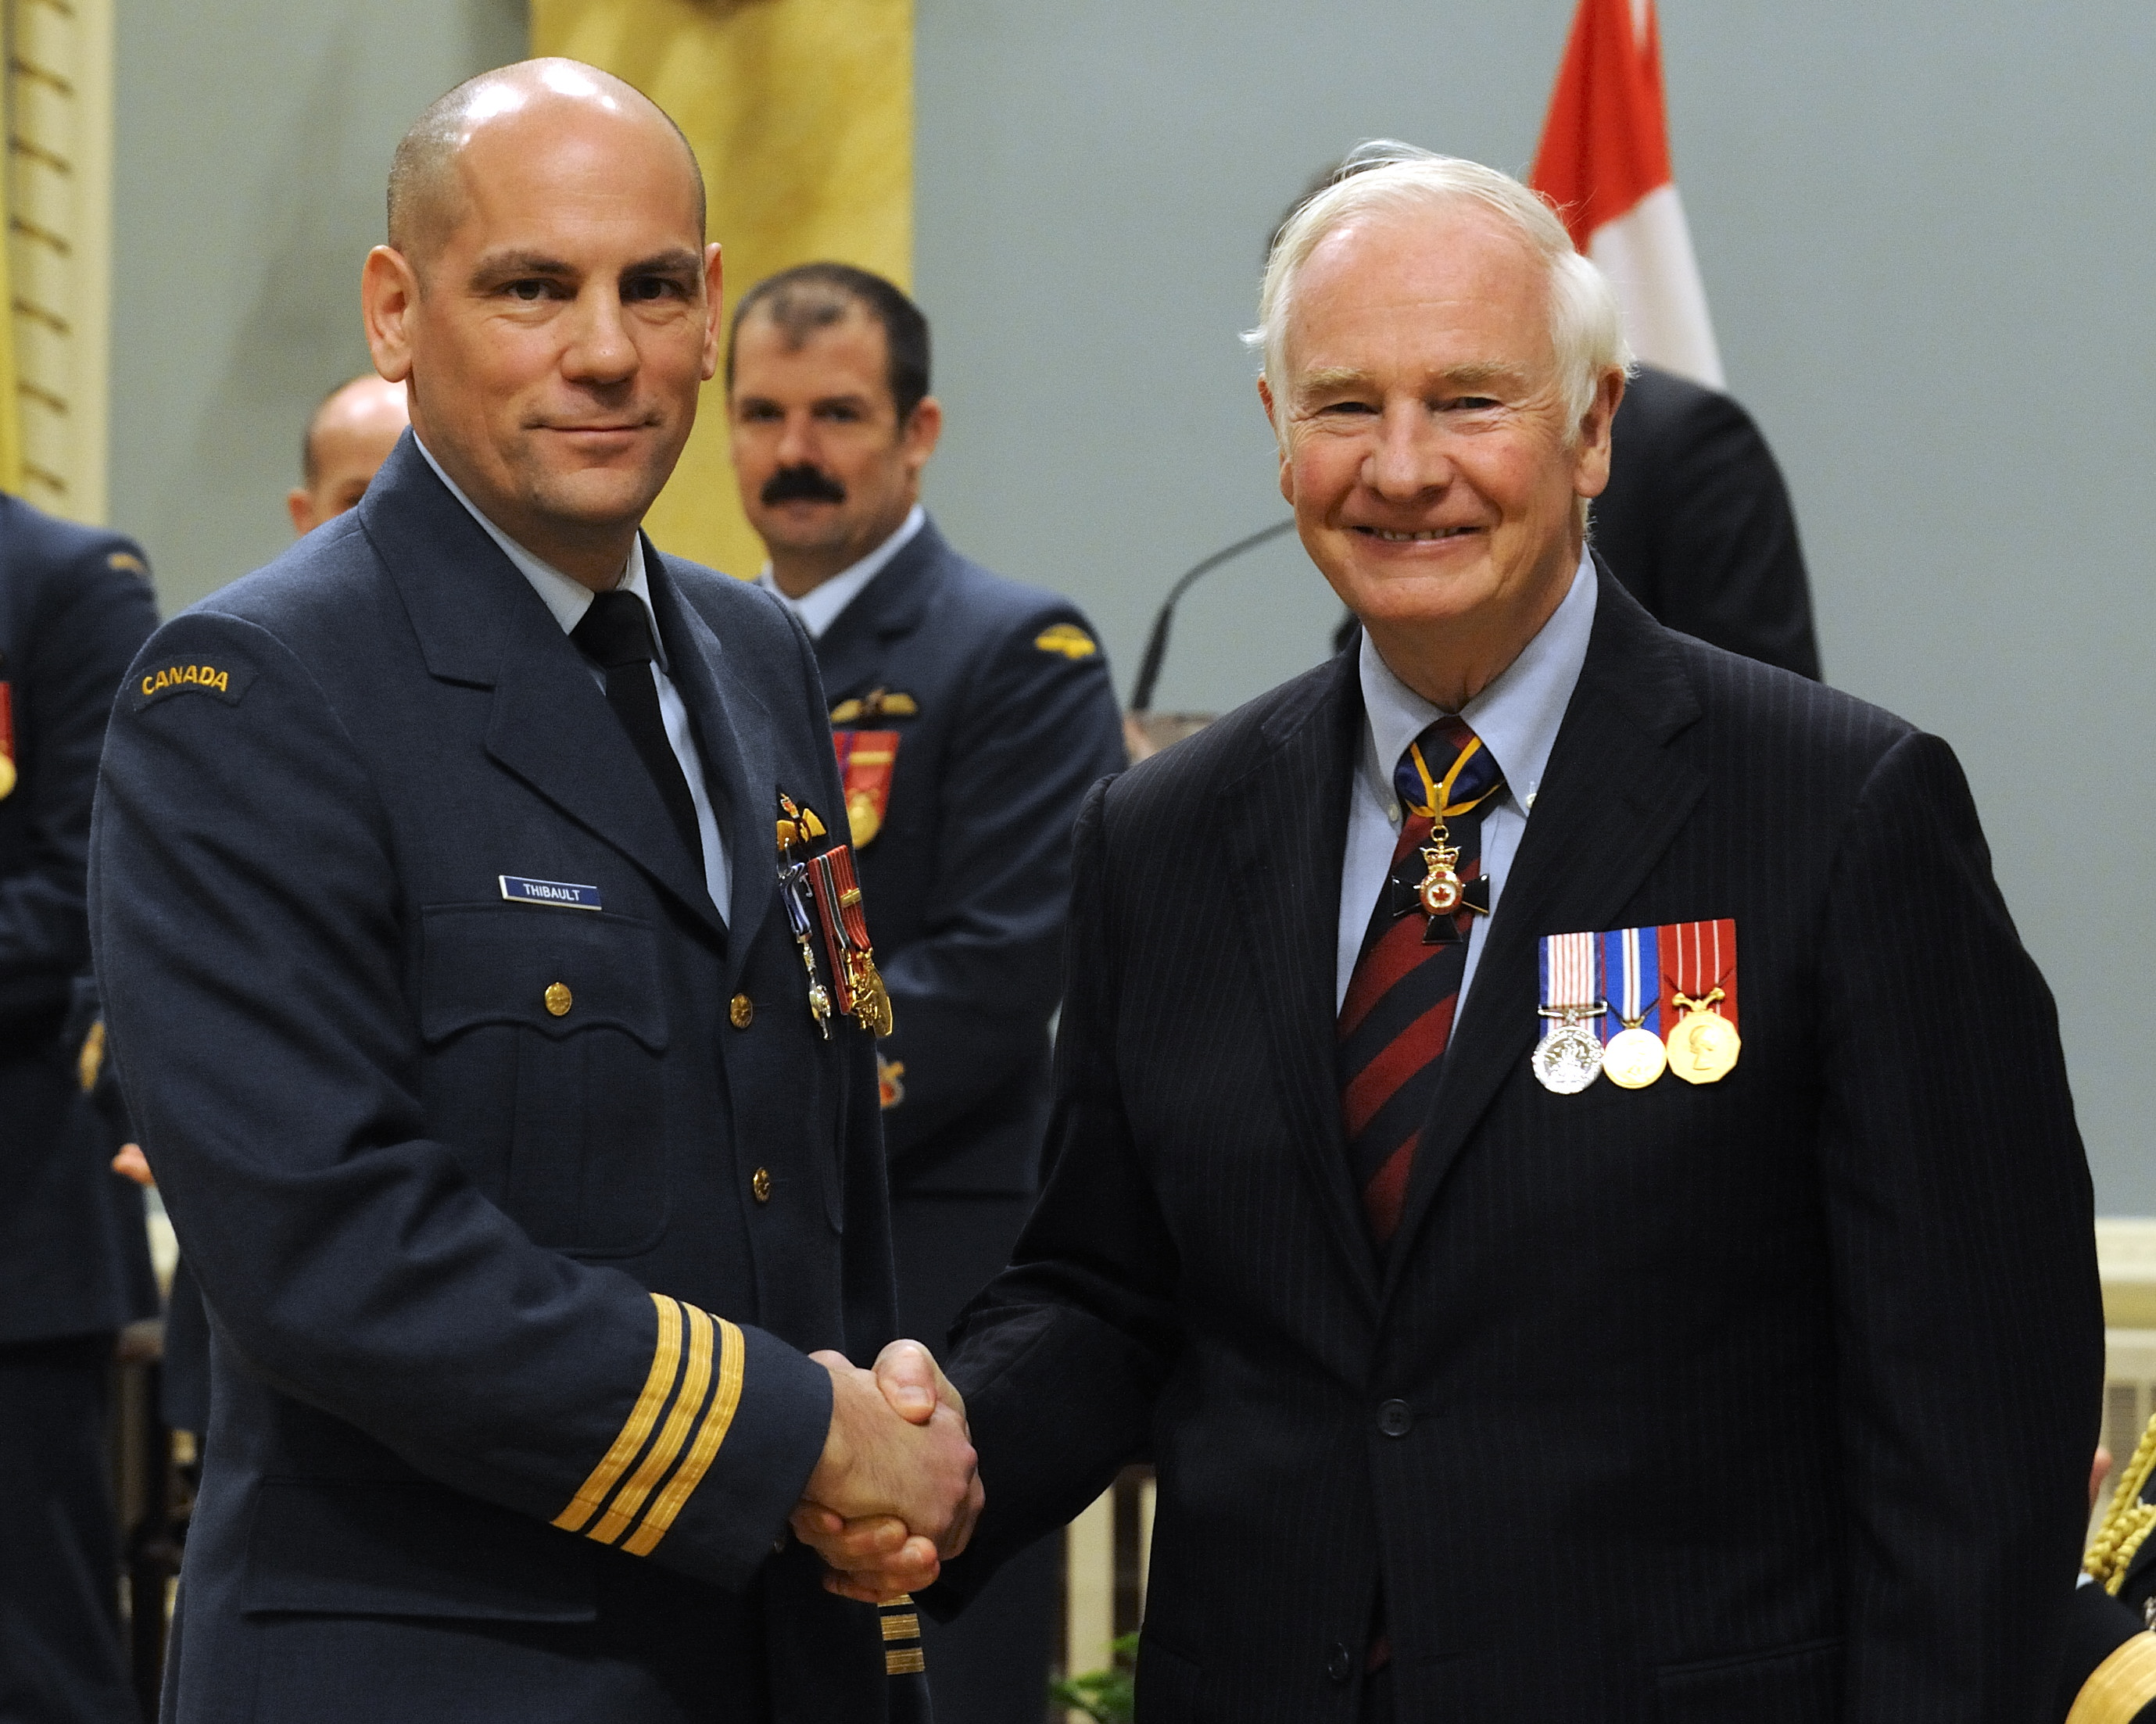 Lieutenant-Colonel Gilbert Clement Thibault, M.S.C., C.D., received the Meritorious Service Cross (Military Division) from His Excellency. On the morning of June 9, 2008, the aircrew of Cormorant Helicopter Rescue 913 successfully evacuated a critically injured sailor from the MV Maersk Dunedin, near Halifax. Aircraft Commander Lieutenant-Colonel Thibault made critical command decisions as he piloted the aircraft under exceptionally demanding circumstances. He was assisted by First Officer Captain Mercer, who helped fly the aircraft for nearly 10 hours, twice landing on Sable Island for fuel as the aircraft's endurance was pushed to its limits.  In conditions where visibility was so poor that they could not even see the vessel in distress, flight engineer Sergeant Pawulski was instrumental in providing advice to help guide the aircraft into position over the deck in order to facilitate the hoist operation.  Search and rescue technicians Warrant Officer Mitchell and Sergeant Kelland were then lowered onto the heaving deck, where they rendered life-saving medical aid to the injured sailor and coordinated his removal to the rescue helicopter.  The team's conduct, dedication and professionalism in the planning and execution of this daring rescue brought great credit to the Canadian Forces.